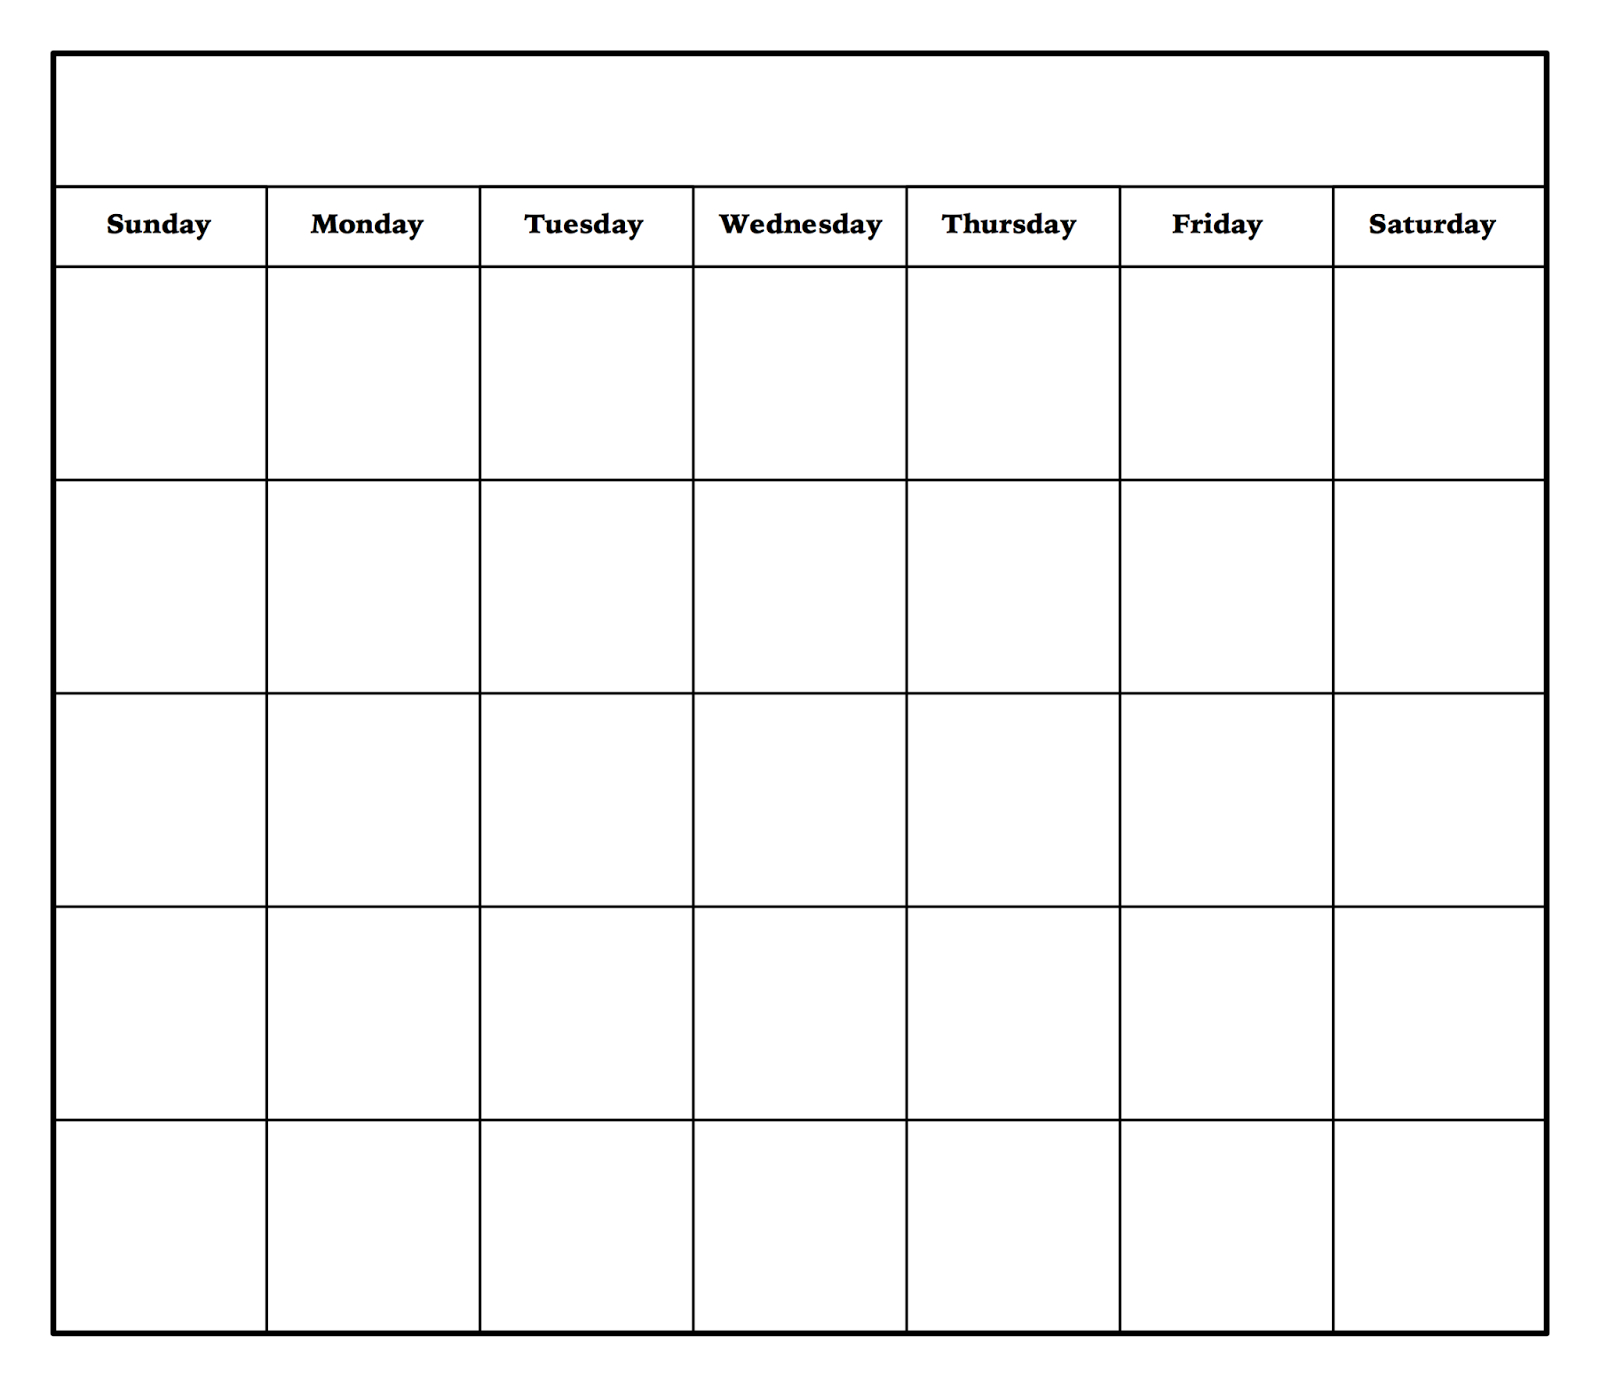 Monthly Calendar Template Excel Sheet | Monthly Calendar pertaining to Blank Monthly Calendar Template To Fill In